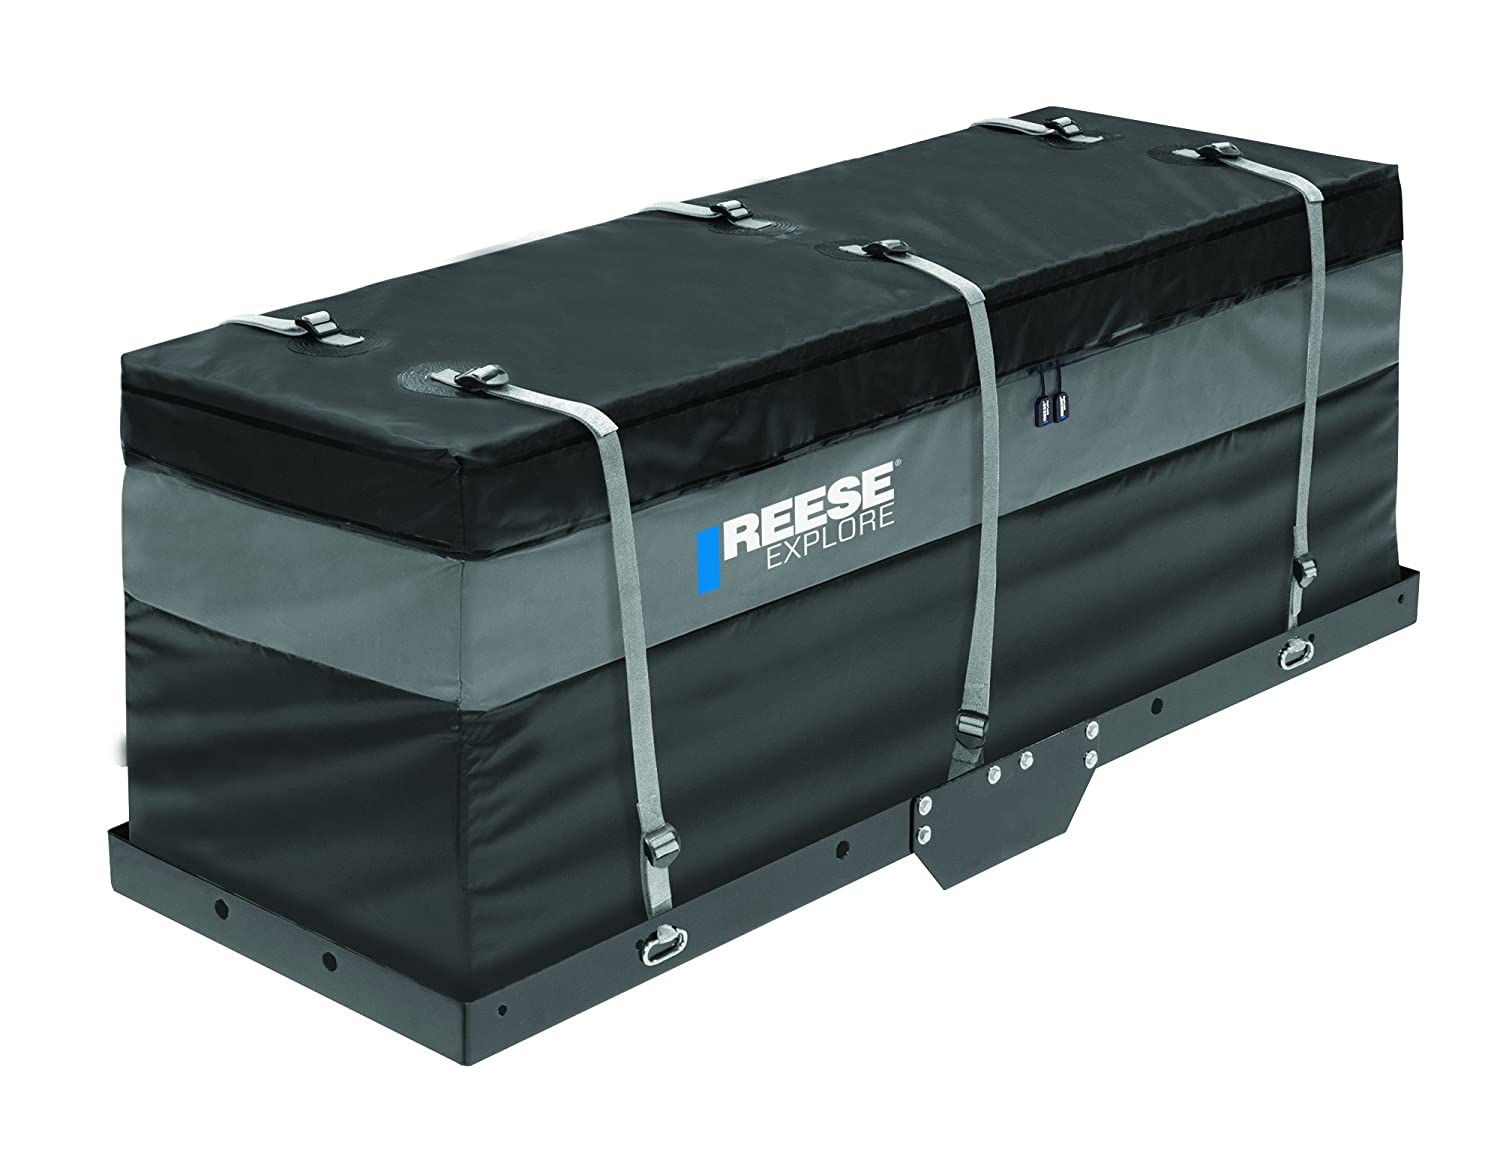 Reese Explore 63604 Rainproof Cargo Tray Bag